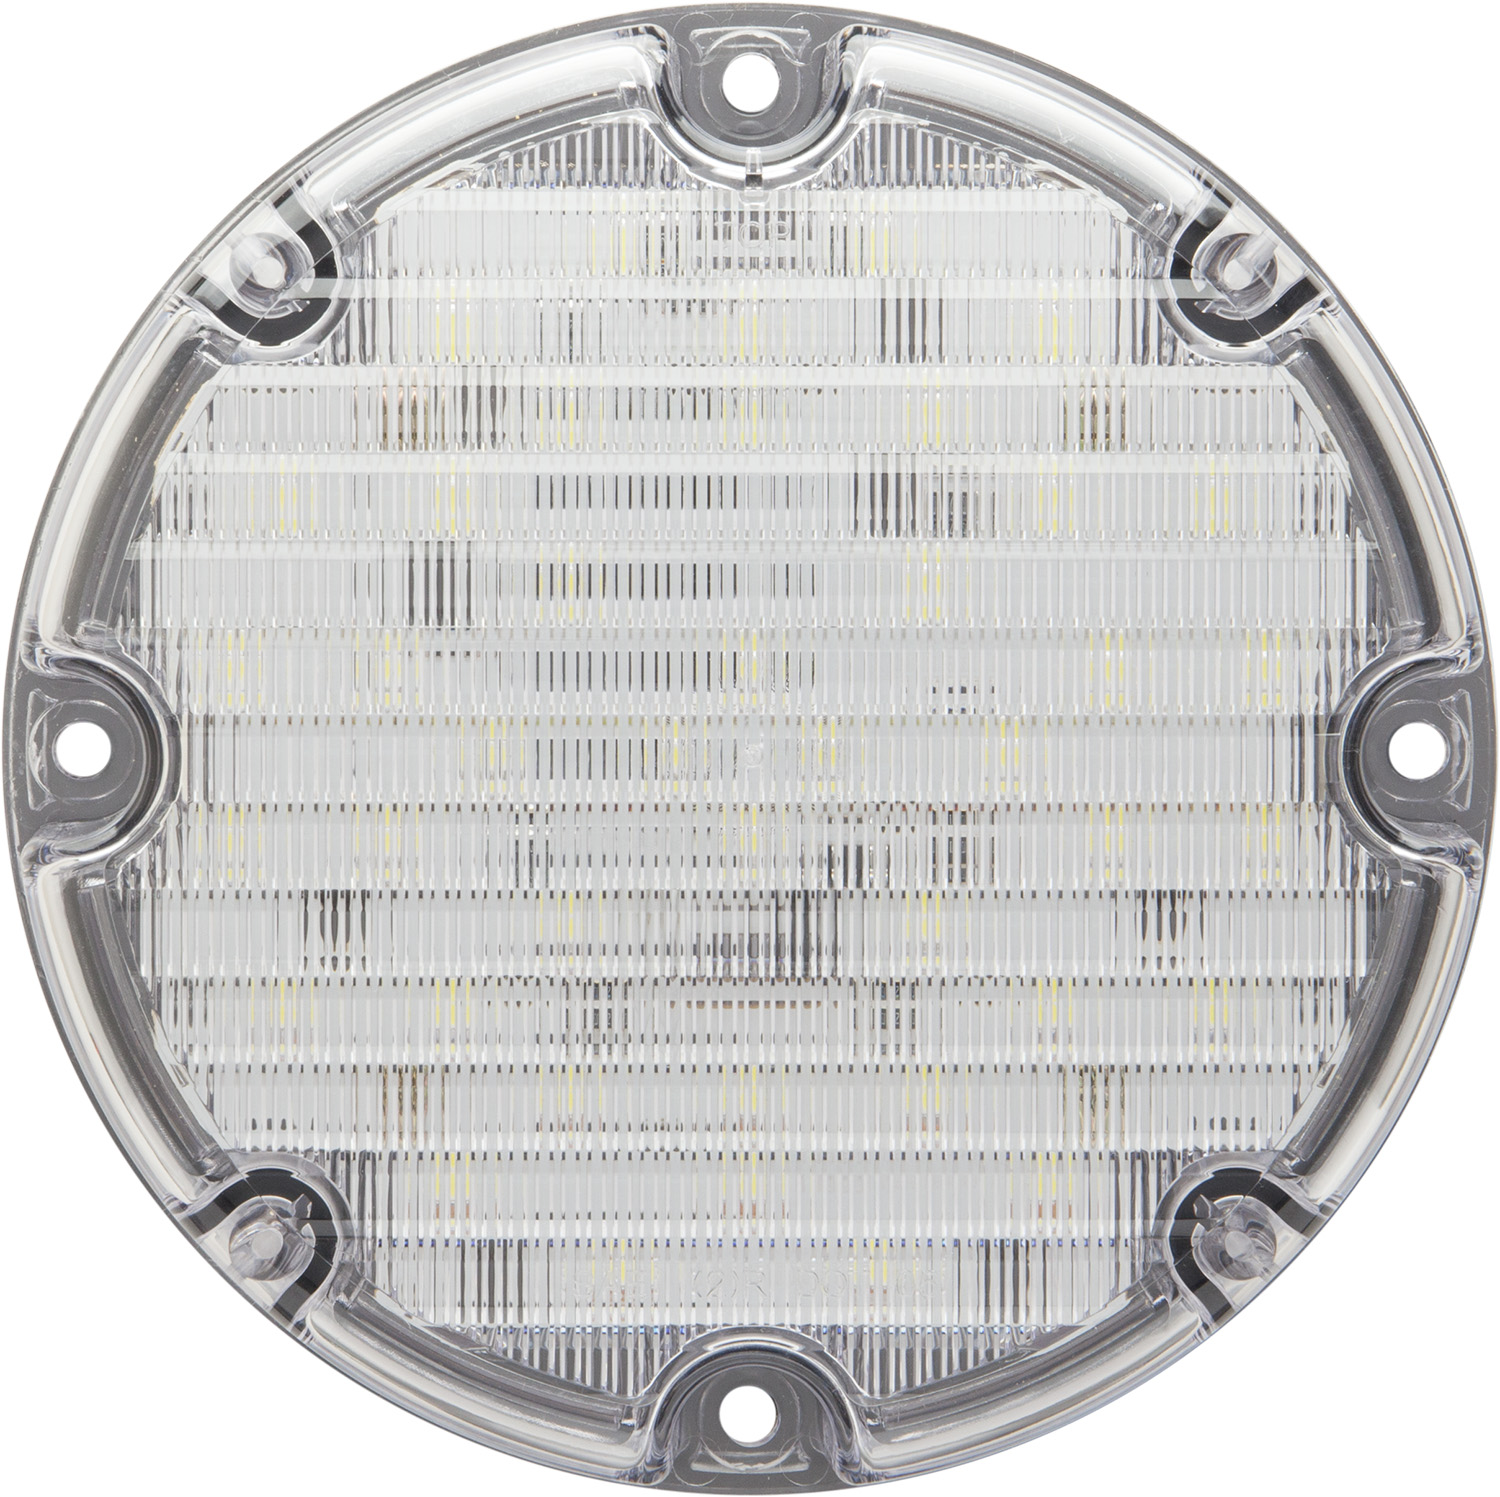 BUL90CB_OPTRONICS Clear 7 in. Back-Up Light Surface Mount Hard Wired 12v